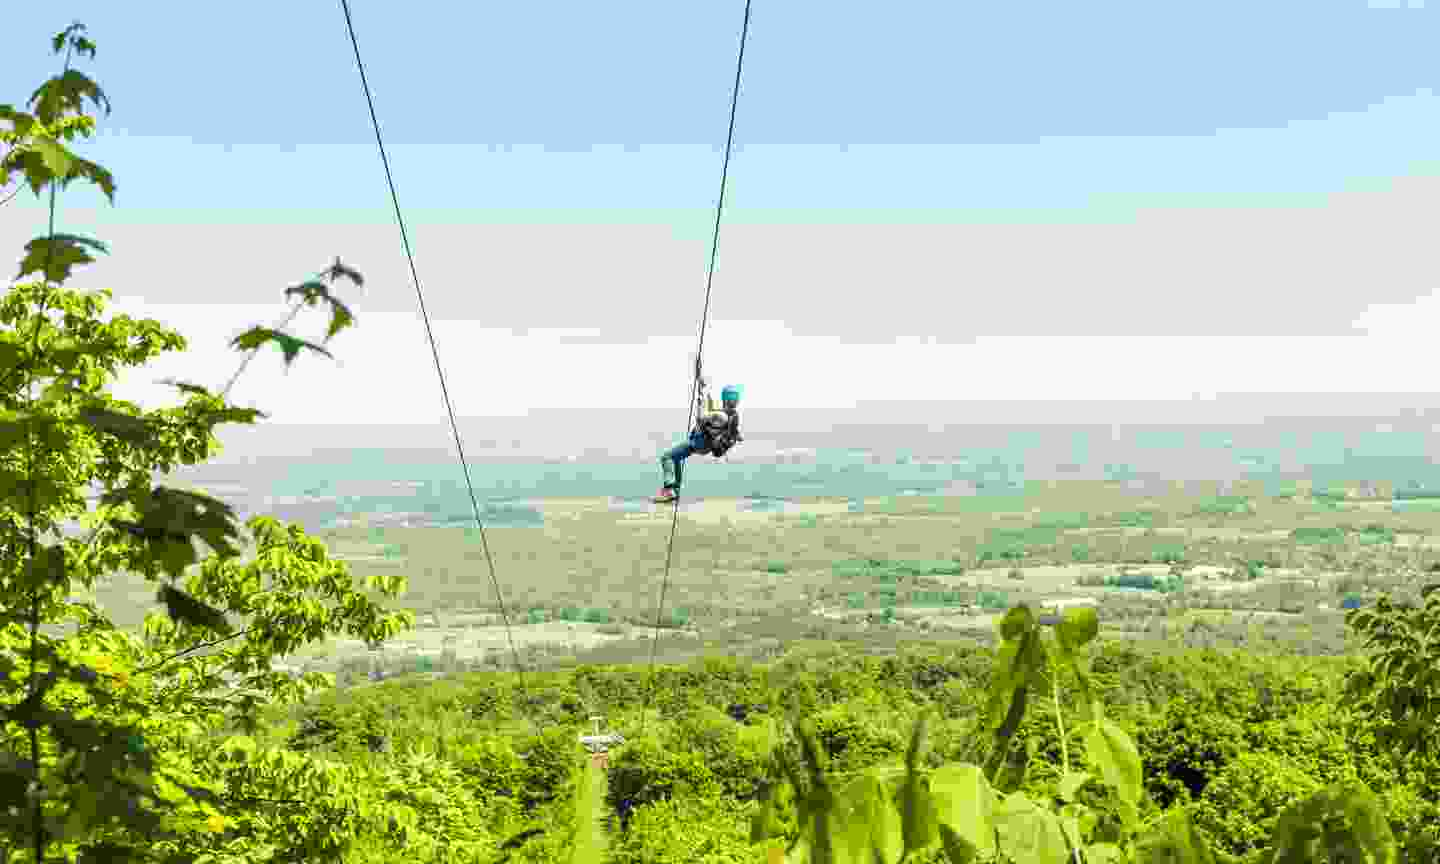 Zip-lining at Blue Mountain, Ontario (Dreamstime)